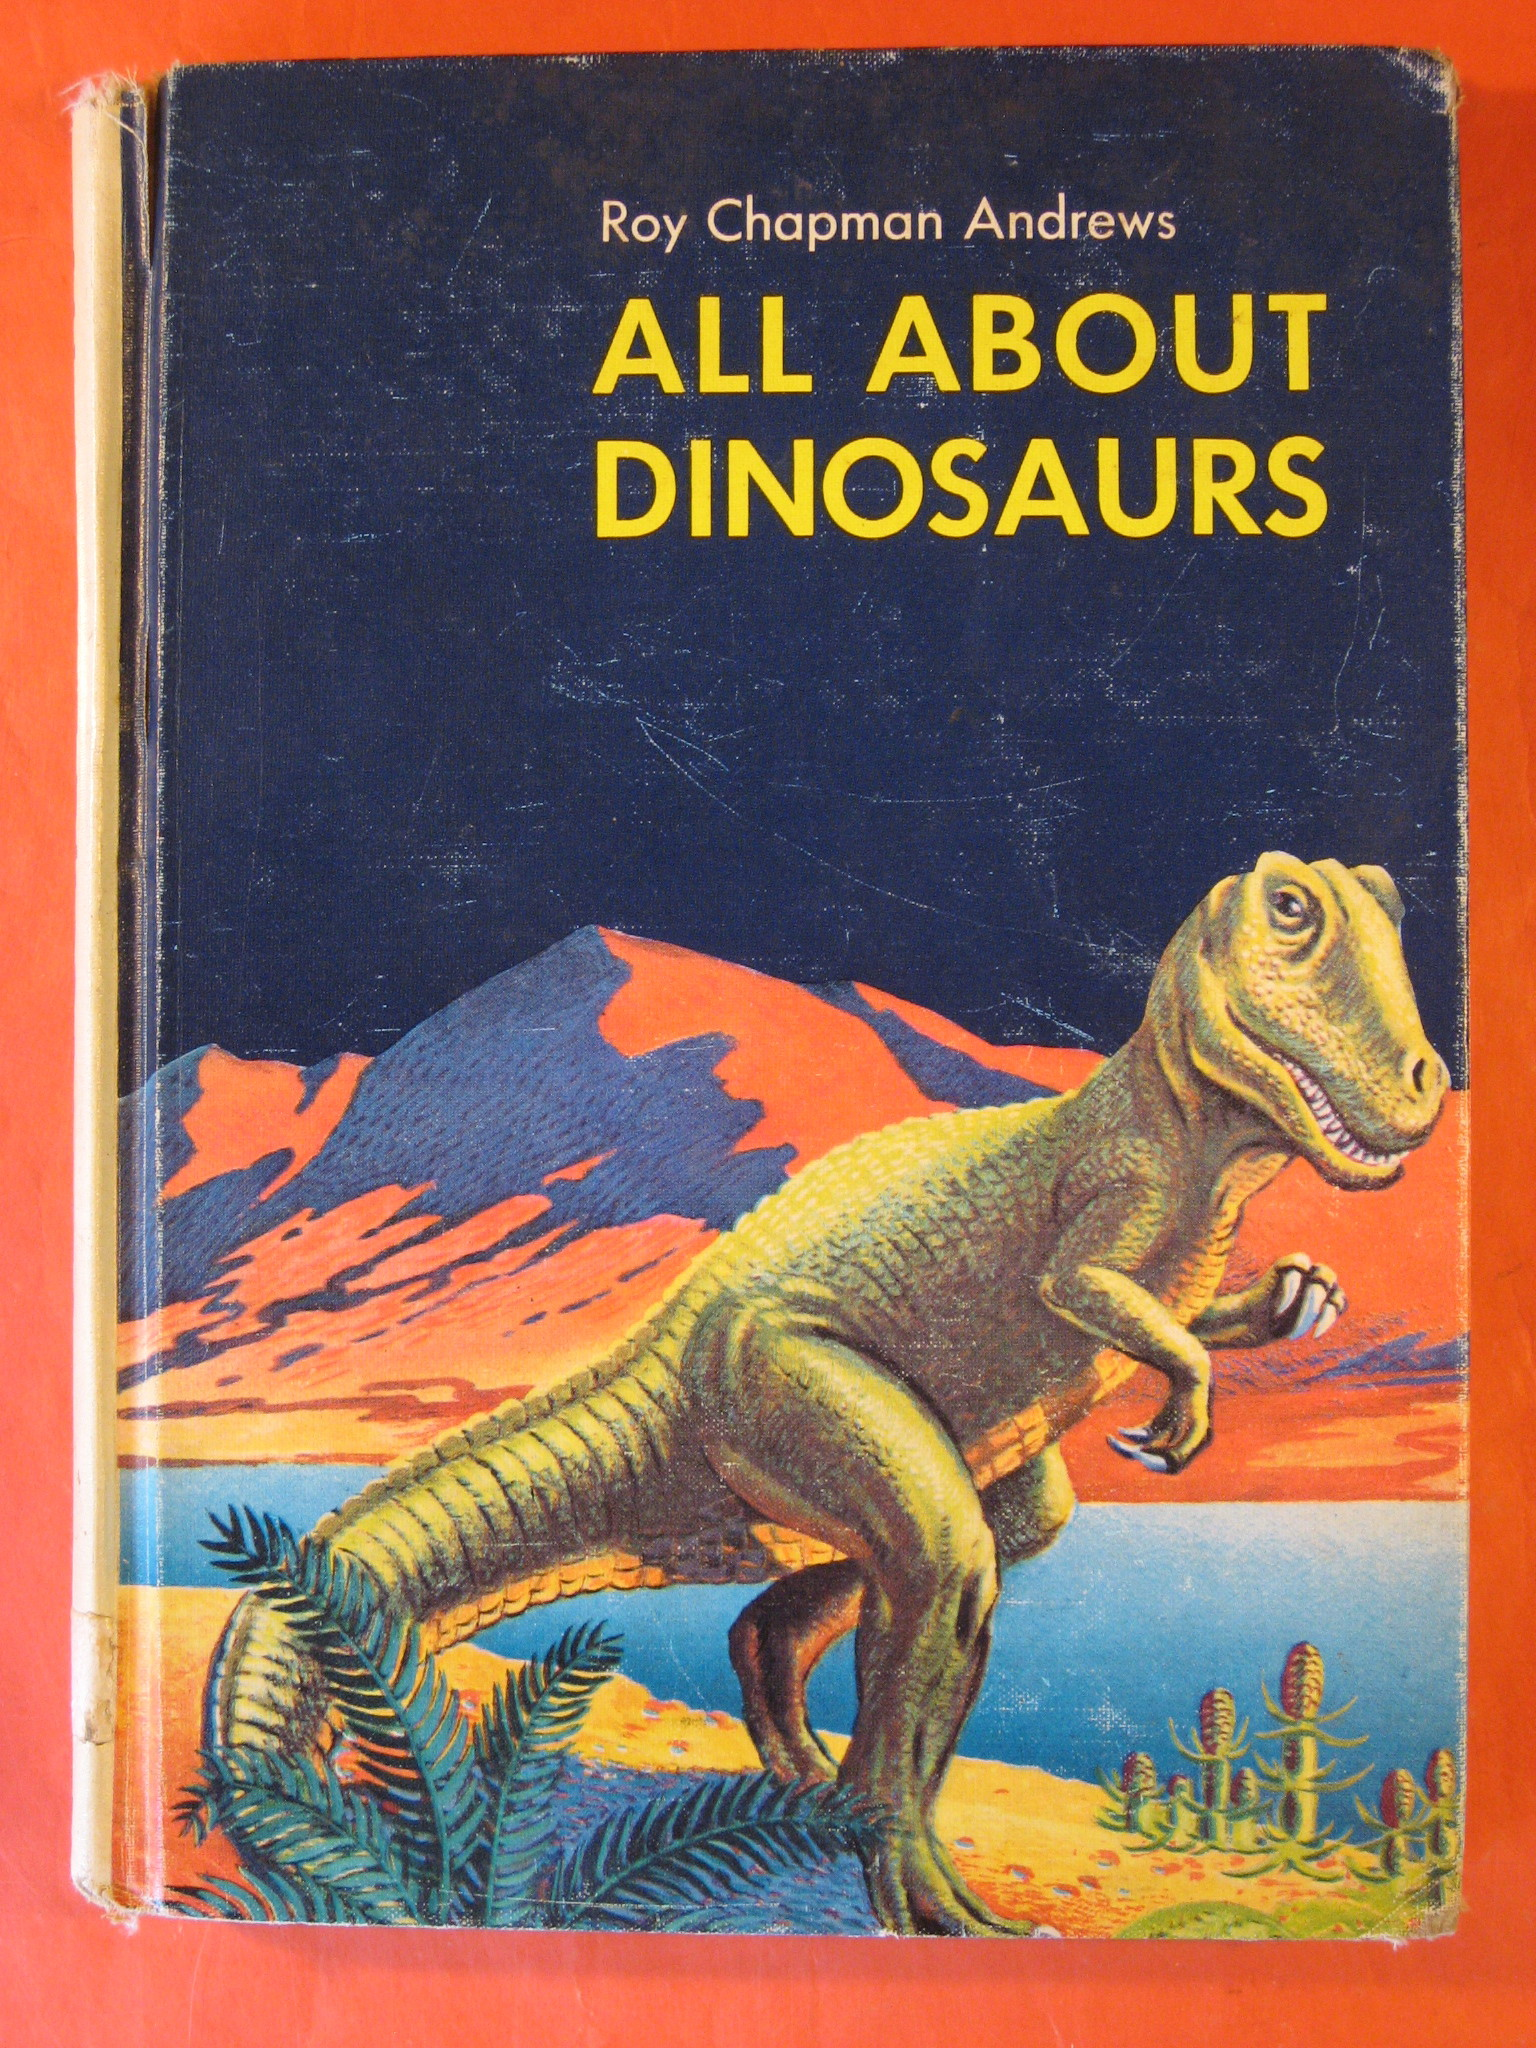 All About Dinosaurs, Andrews, Roy Chapman